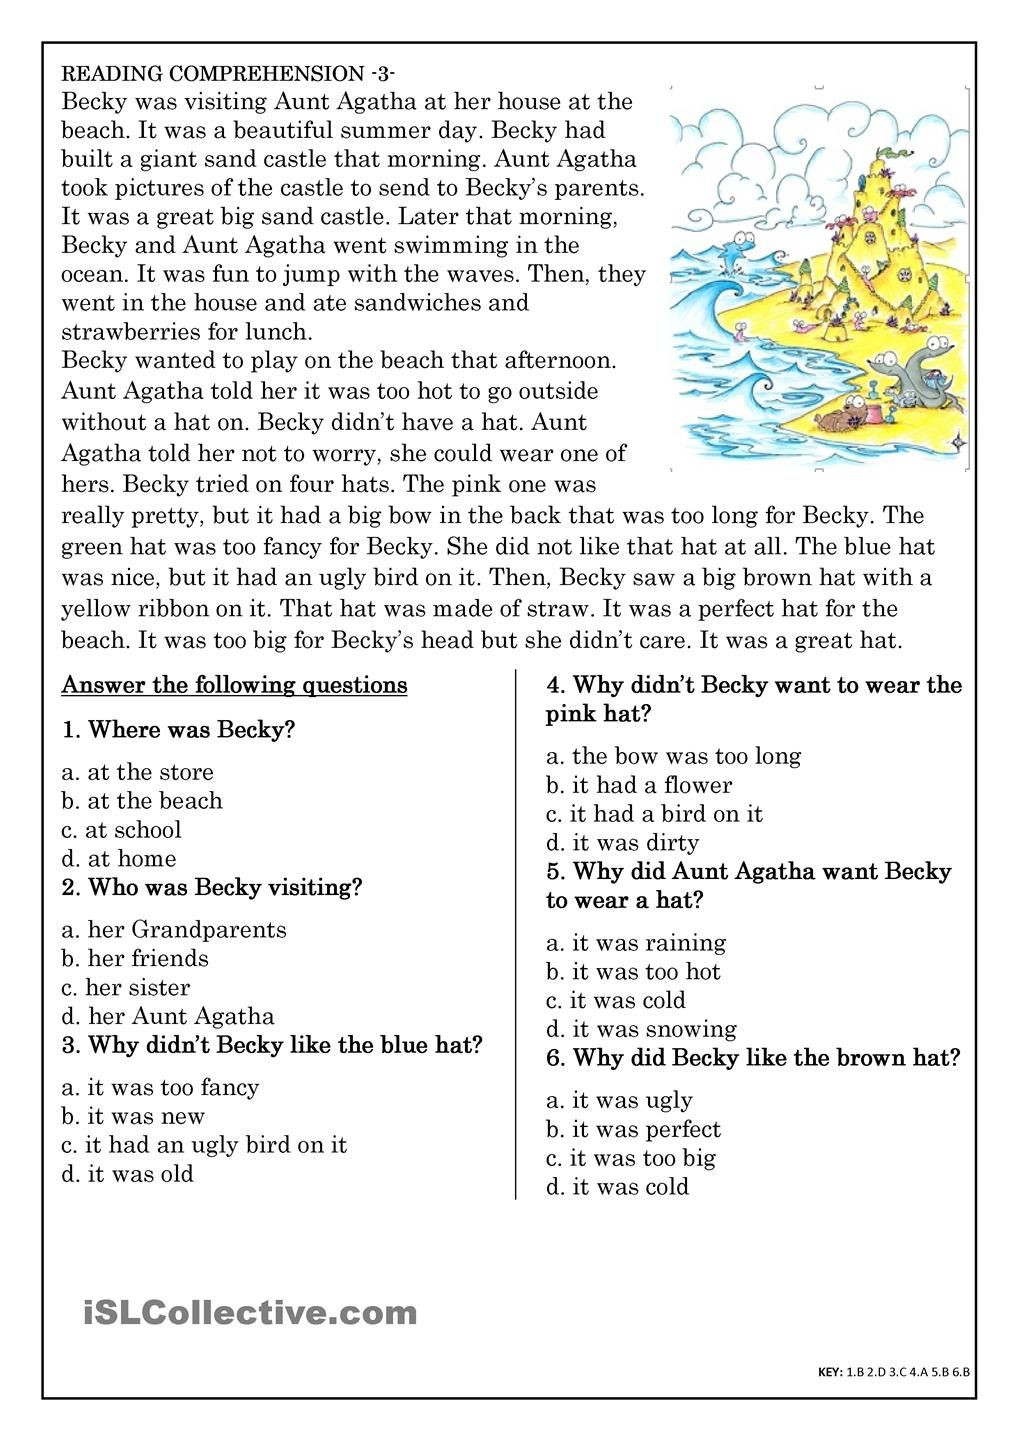 Reading Comprehension Worksheets 7th Grade Monthly Archives June 2020 English Reading Prehension